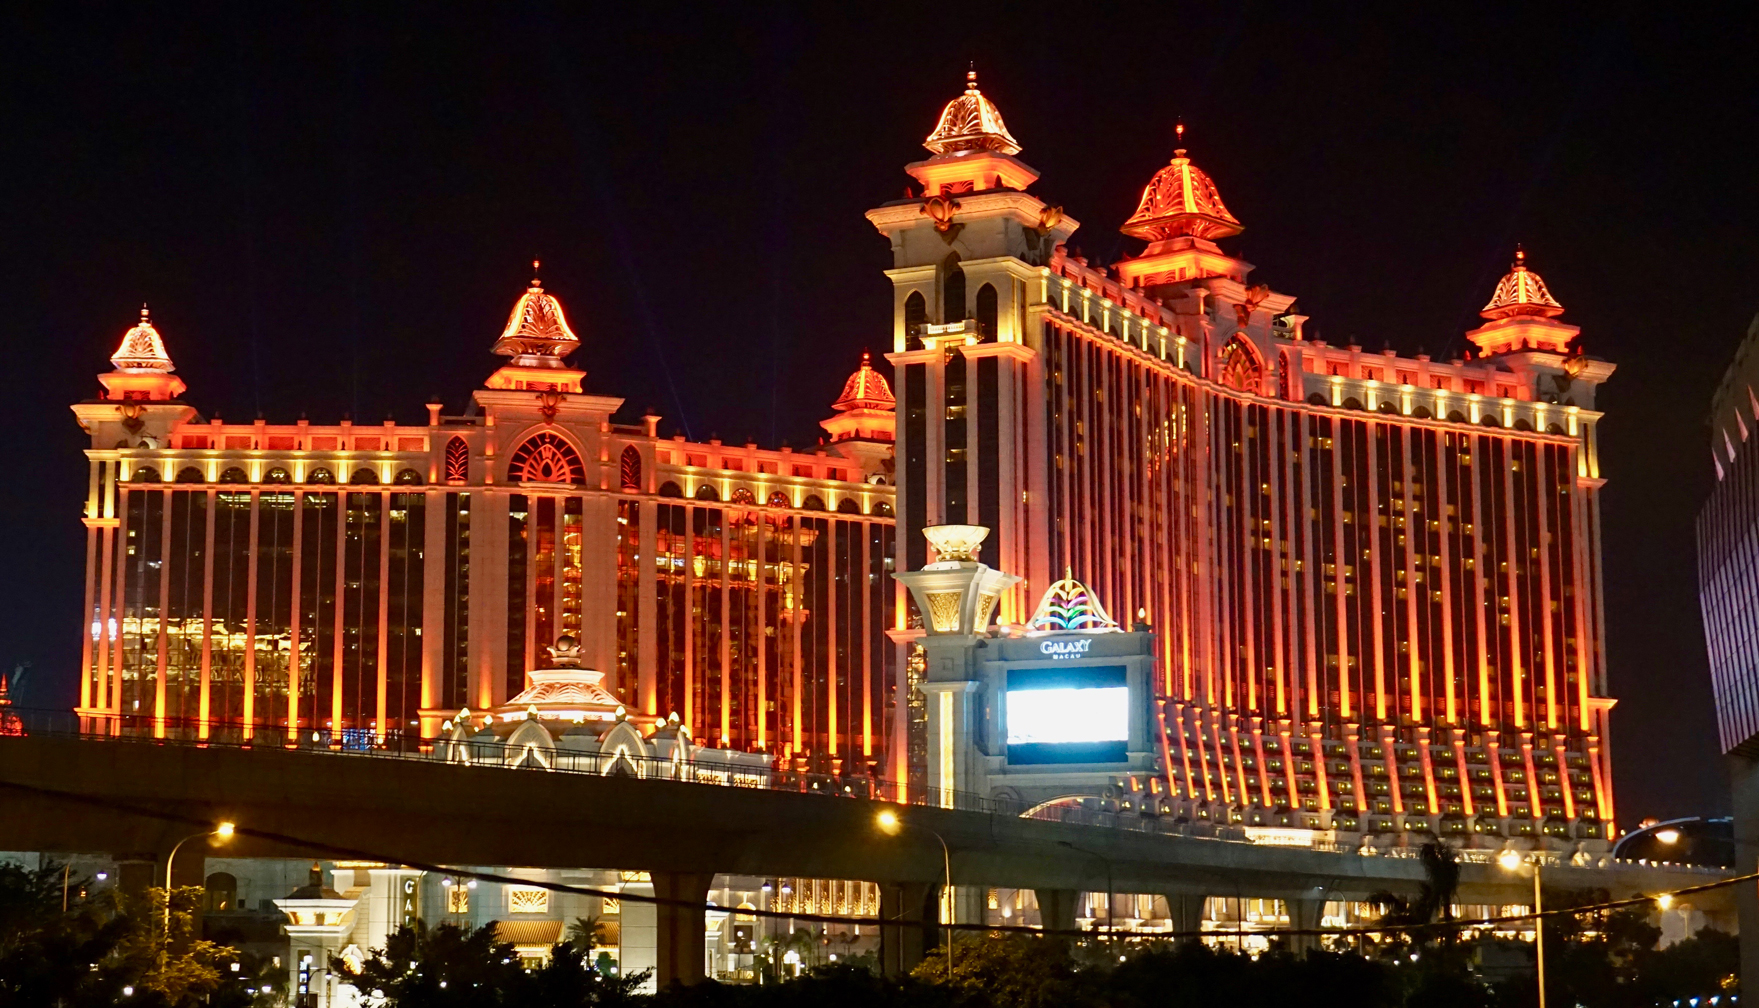 Macau set to become worlds richest place by 2020 izmirmasajfo